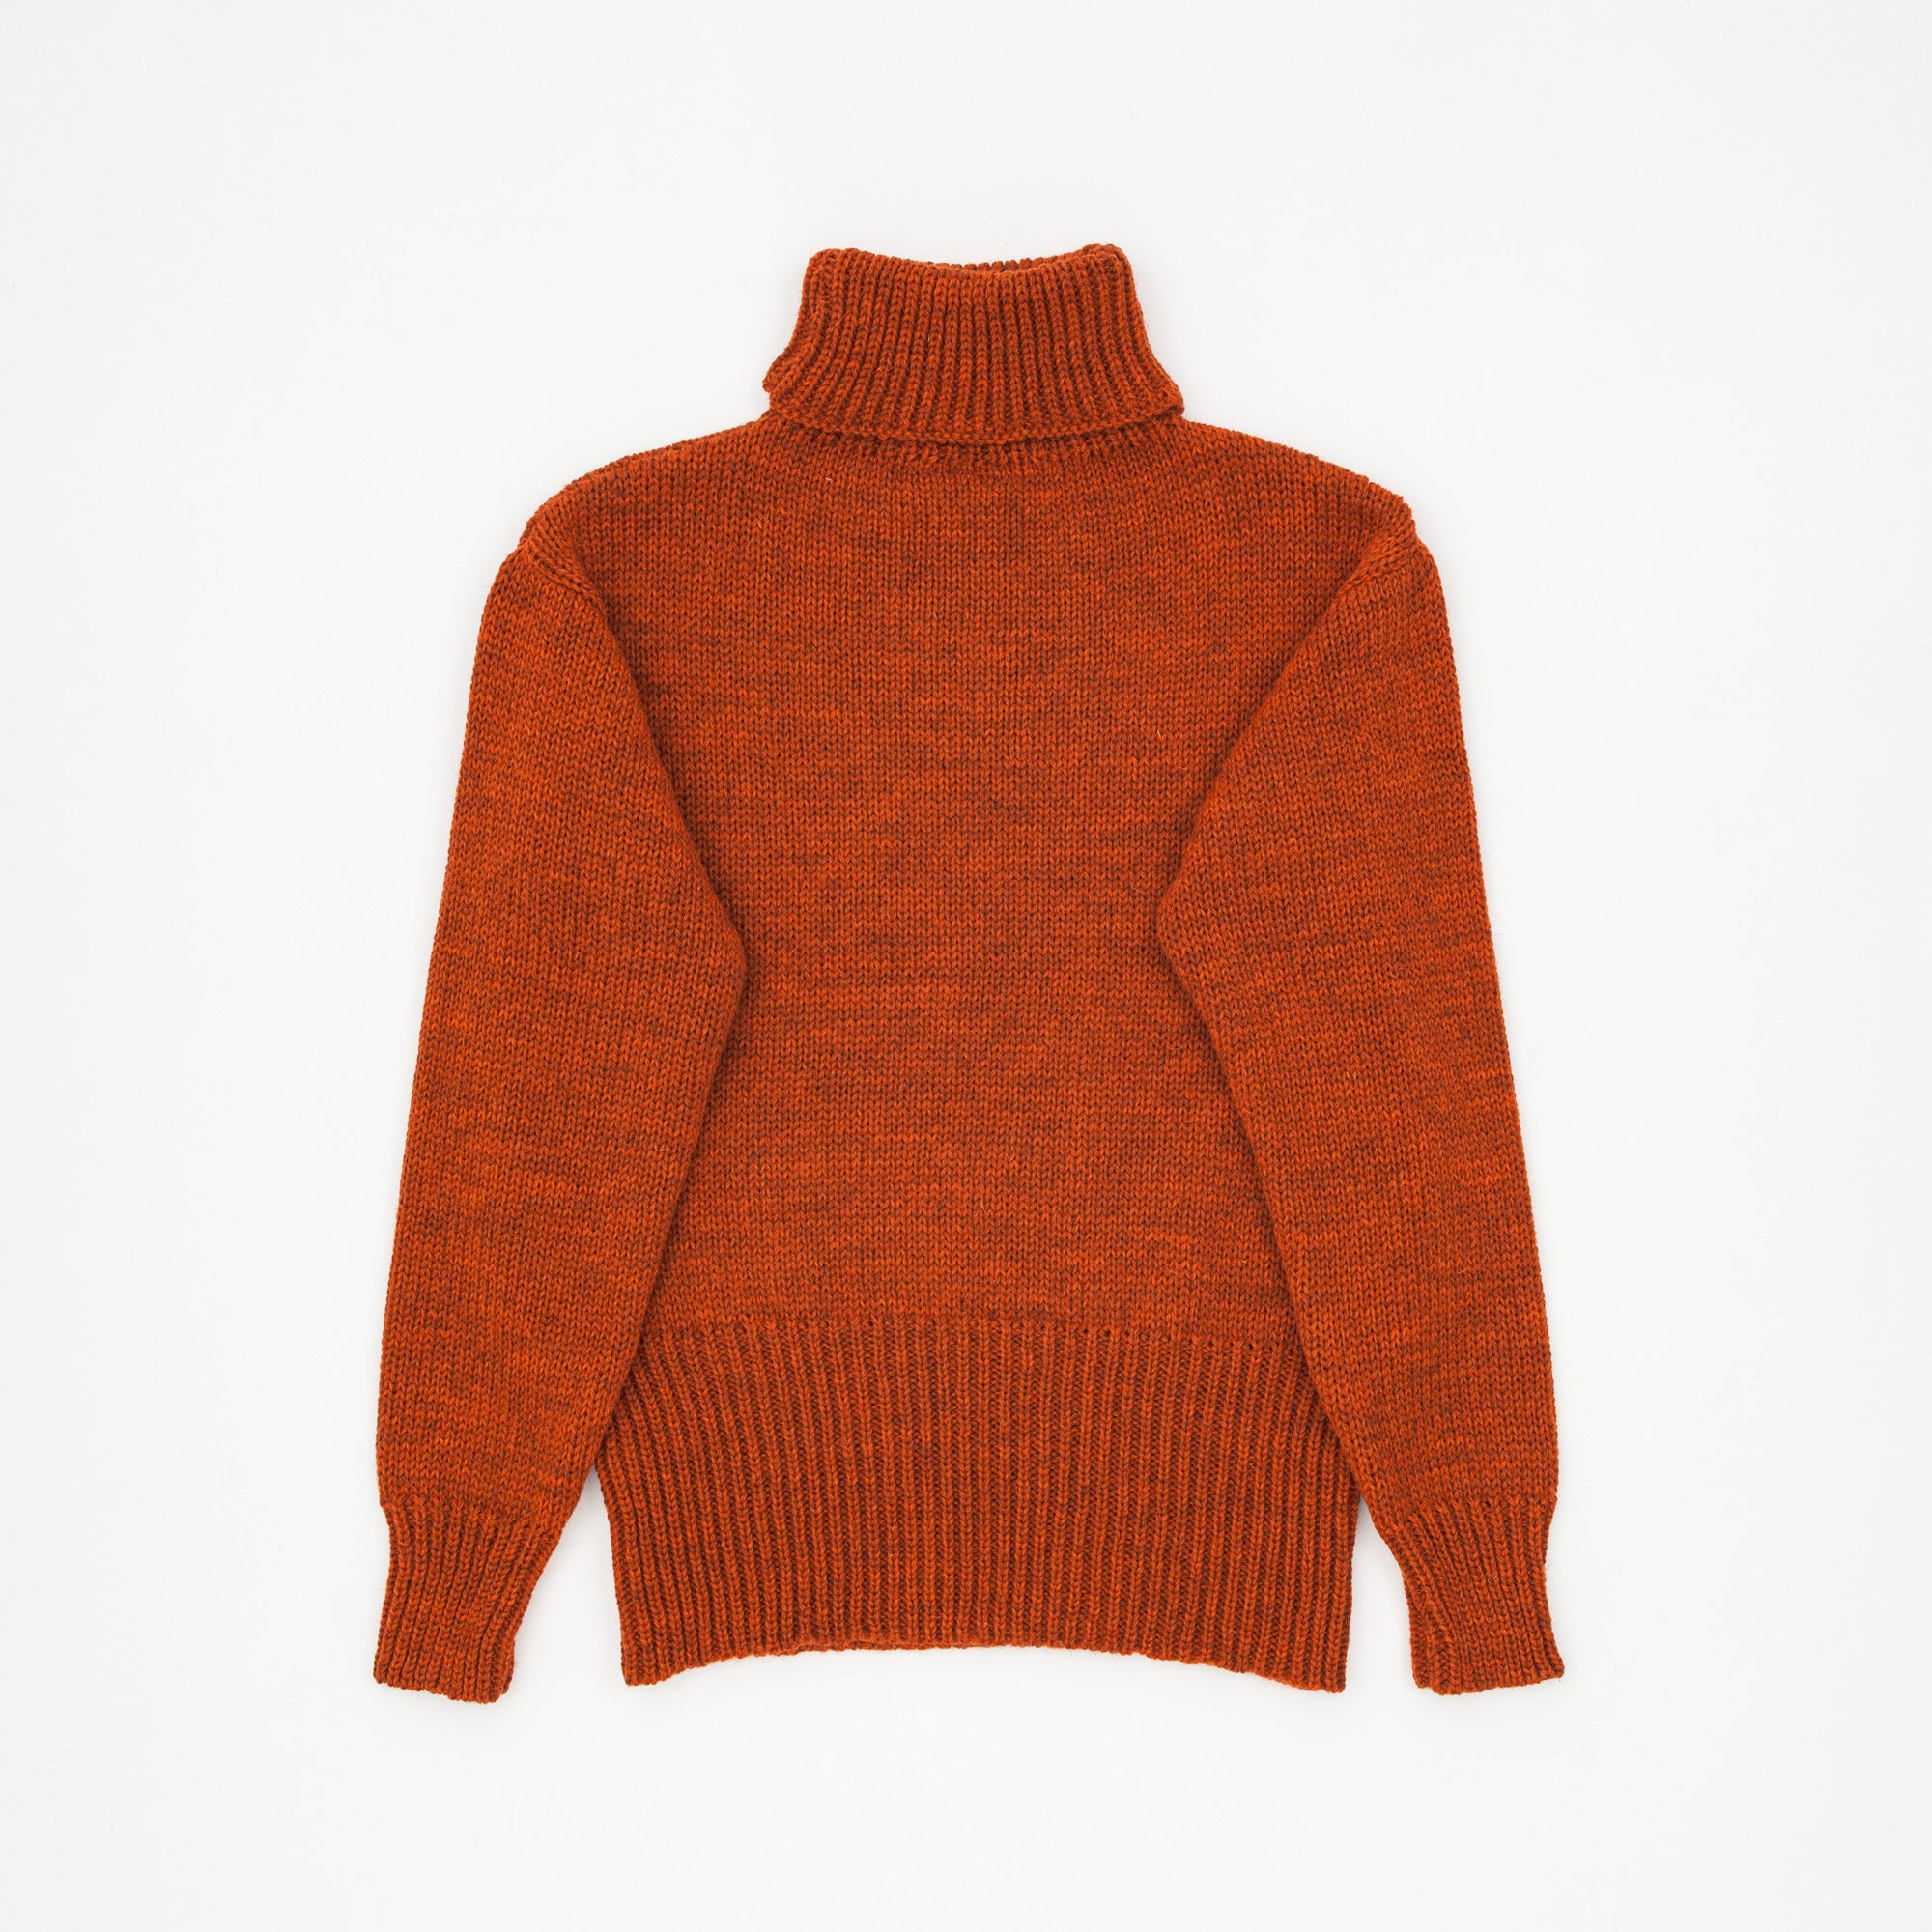 British Wool Submariner Sweater